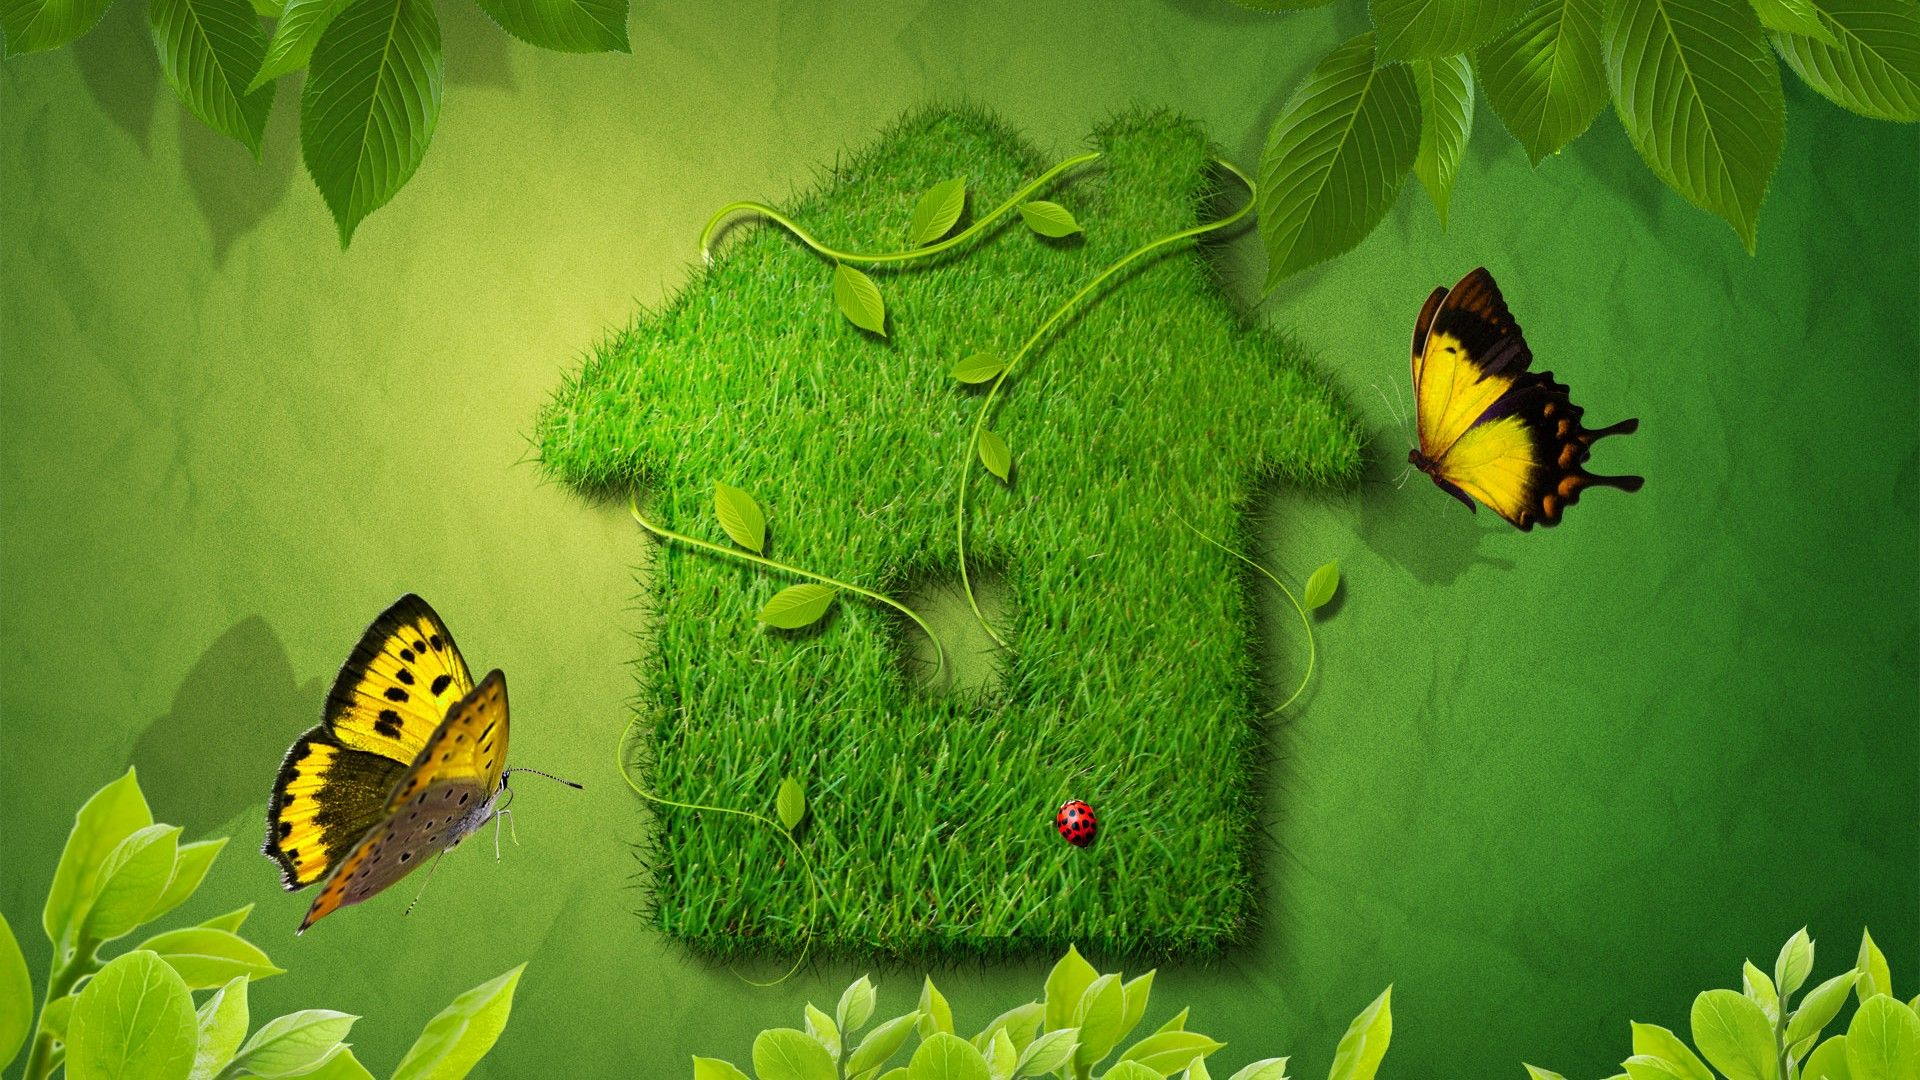 Image For Free Grass House With Butterfly 3d Hd Wallpaper Iraq